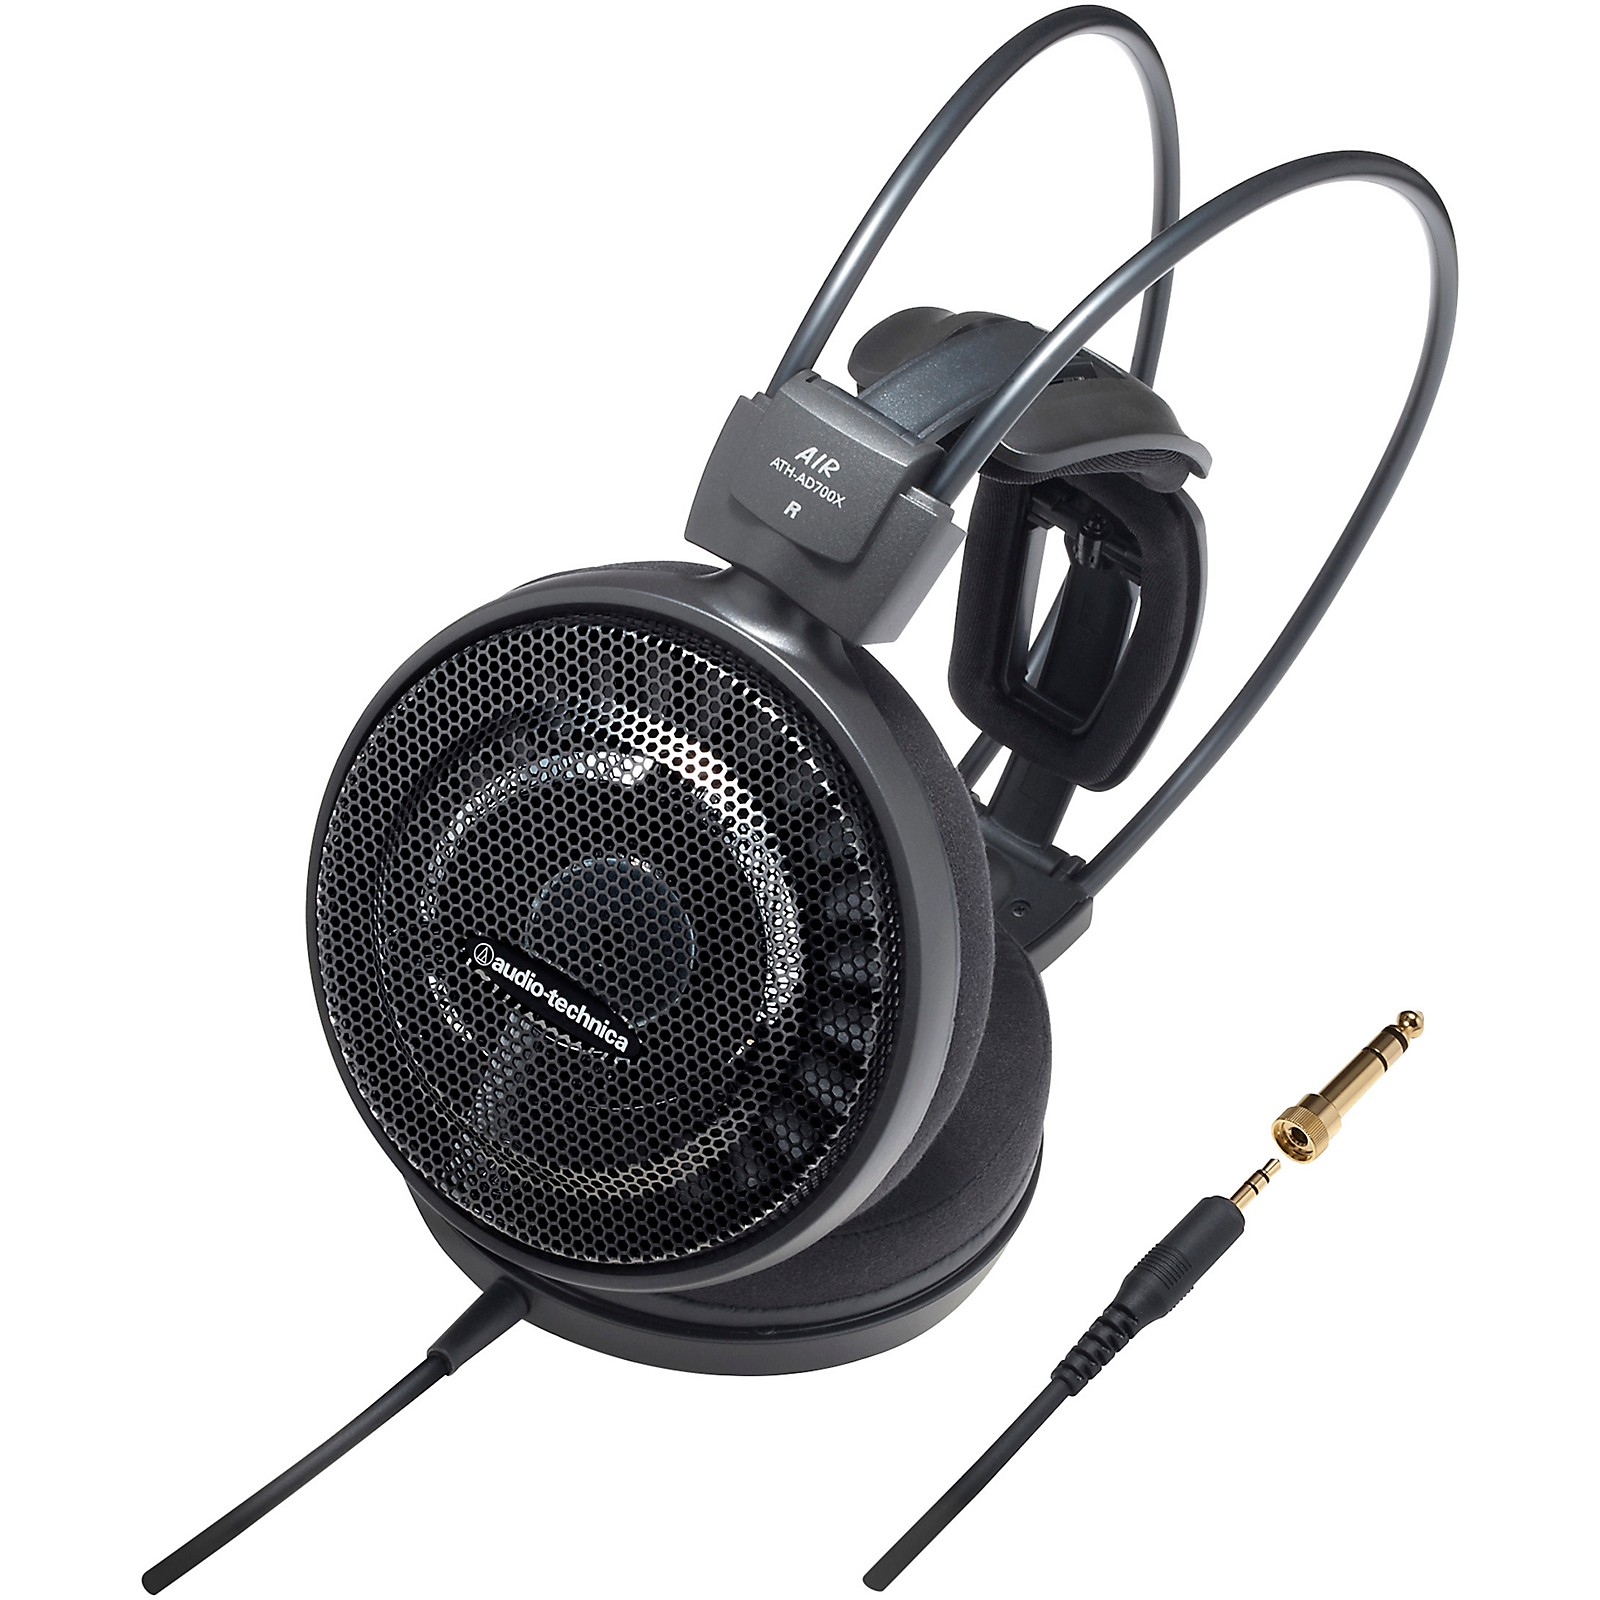 Open Box Audio-Technica ATH-AD700X Audiophile Open-air Headphones